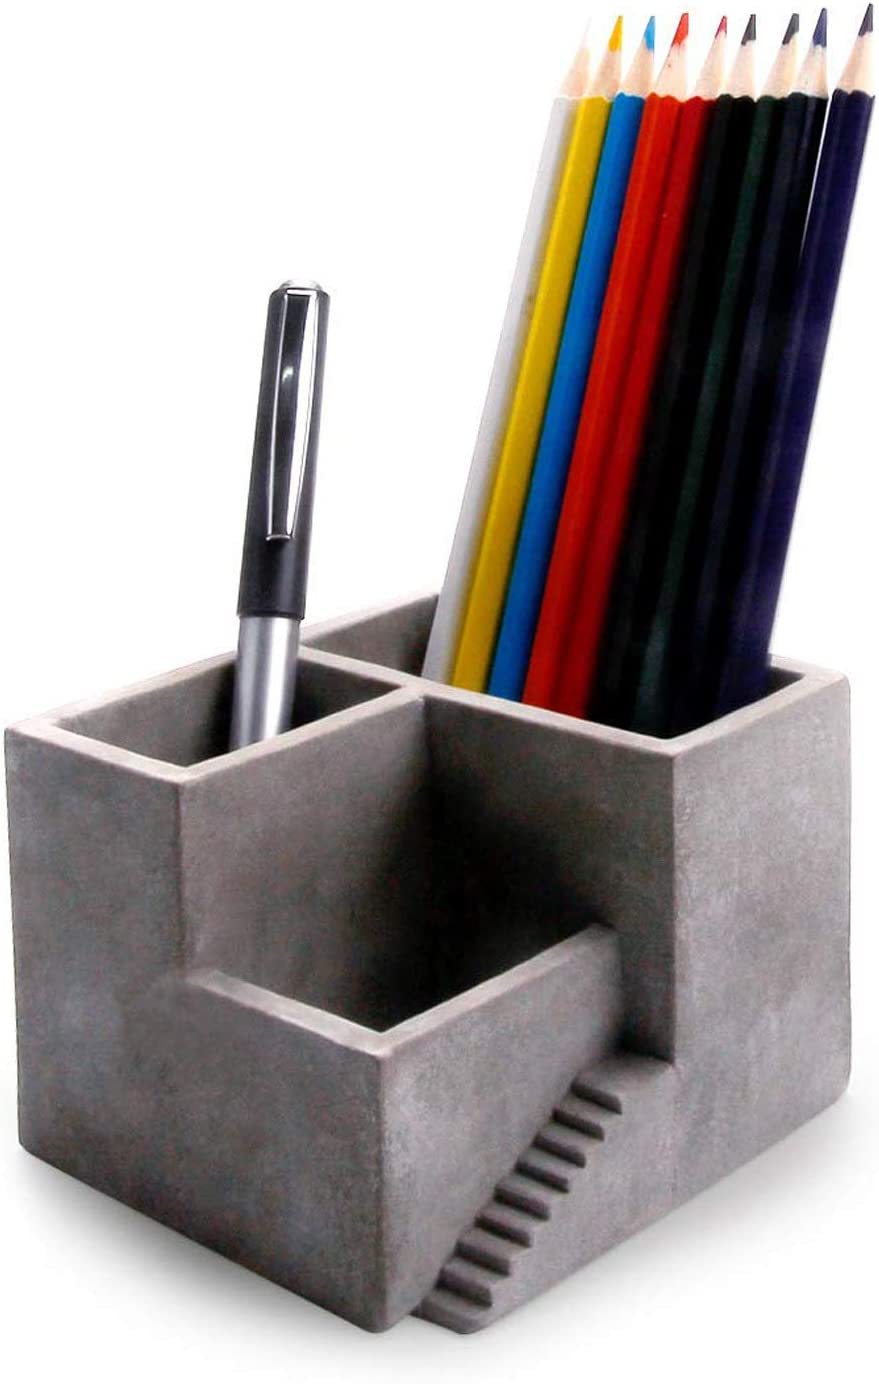 ComSaf Cement Pen Pencil Holder with Small Succulents Planter Box, Concrete Office Desktop Organizer with 3 Compartments, Set of 1 (Grey)